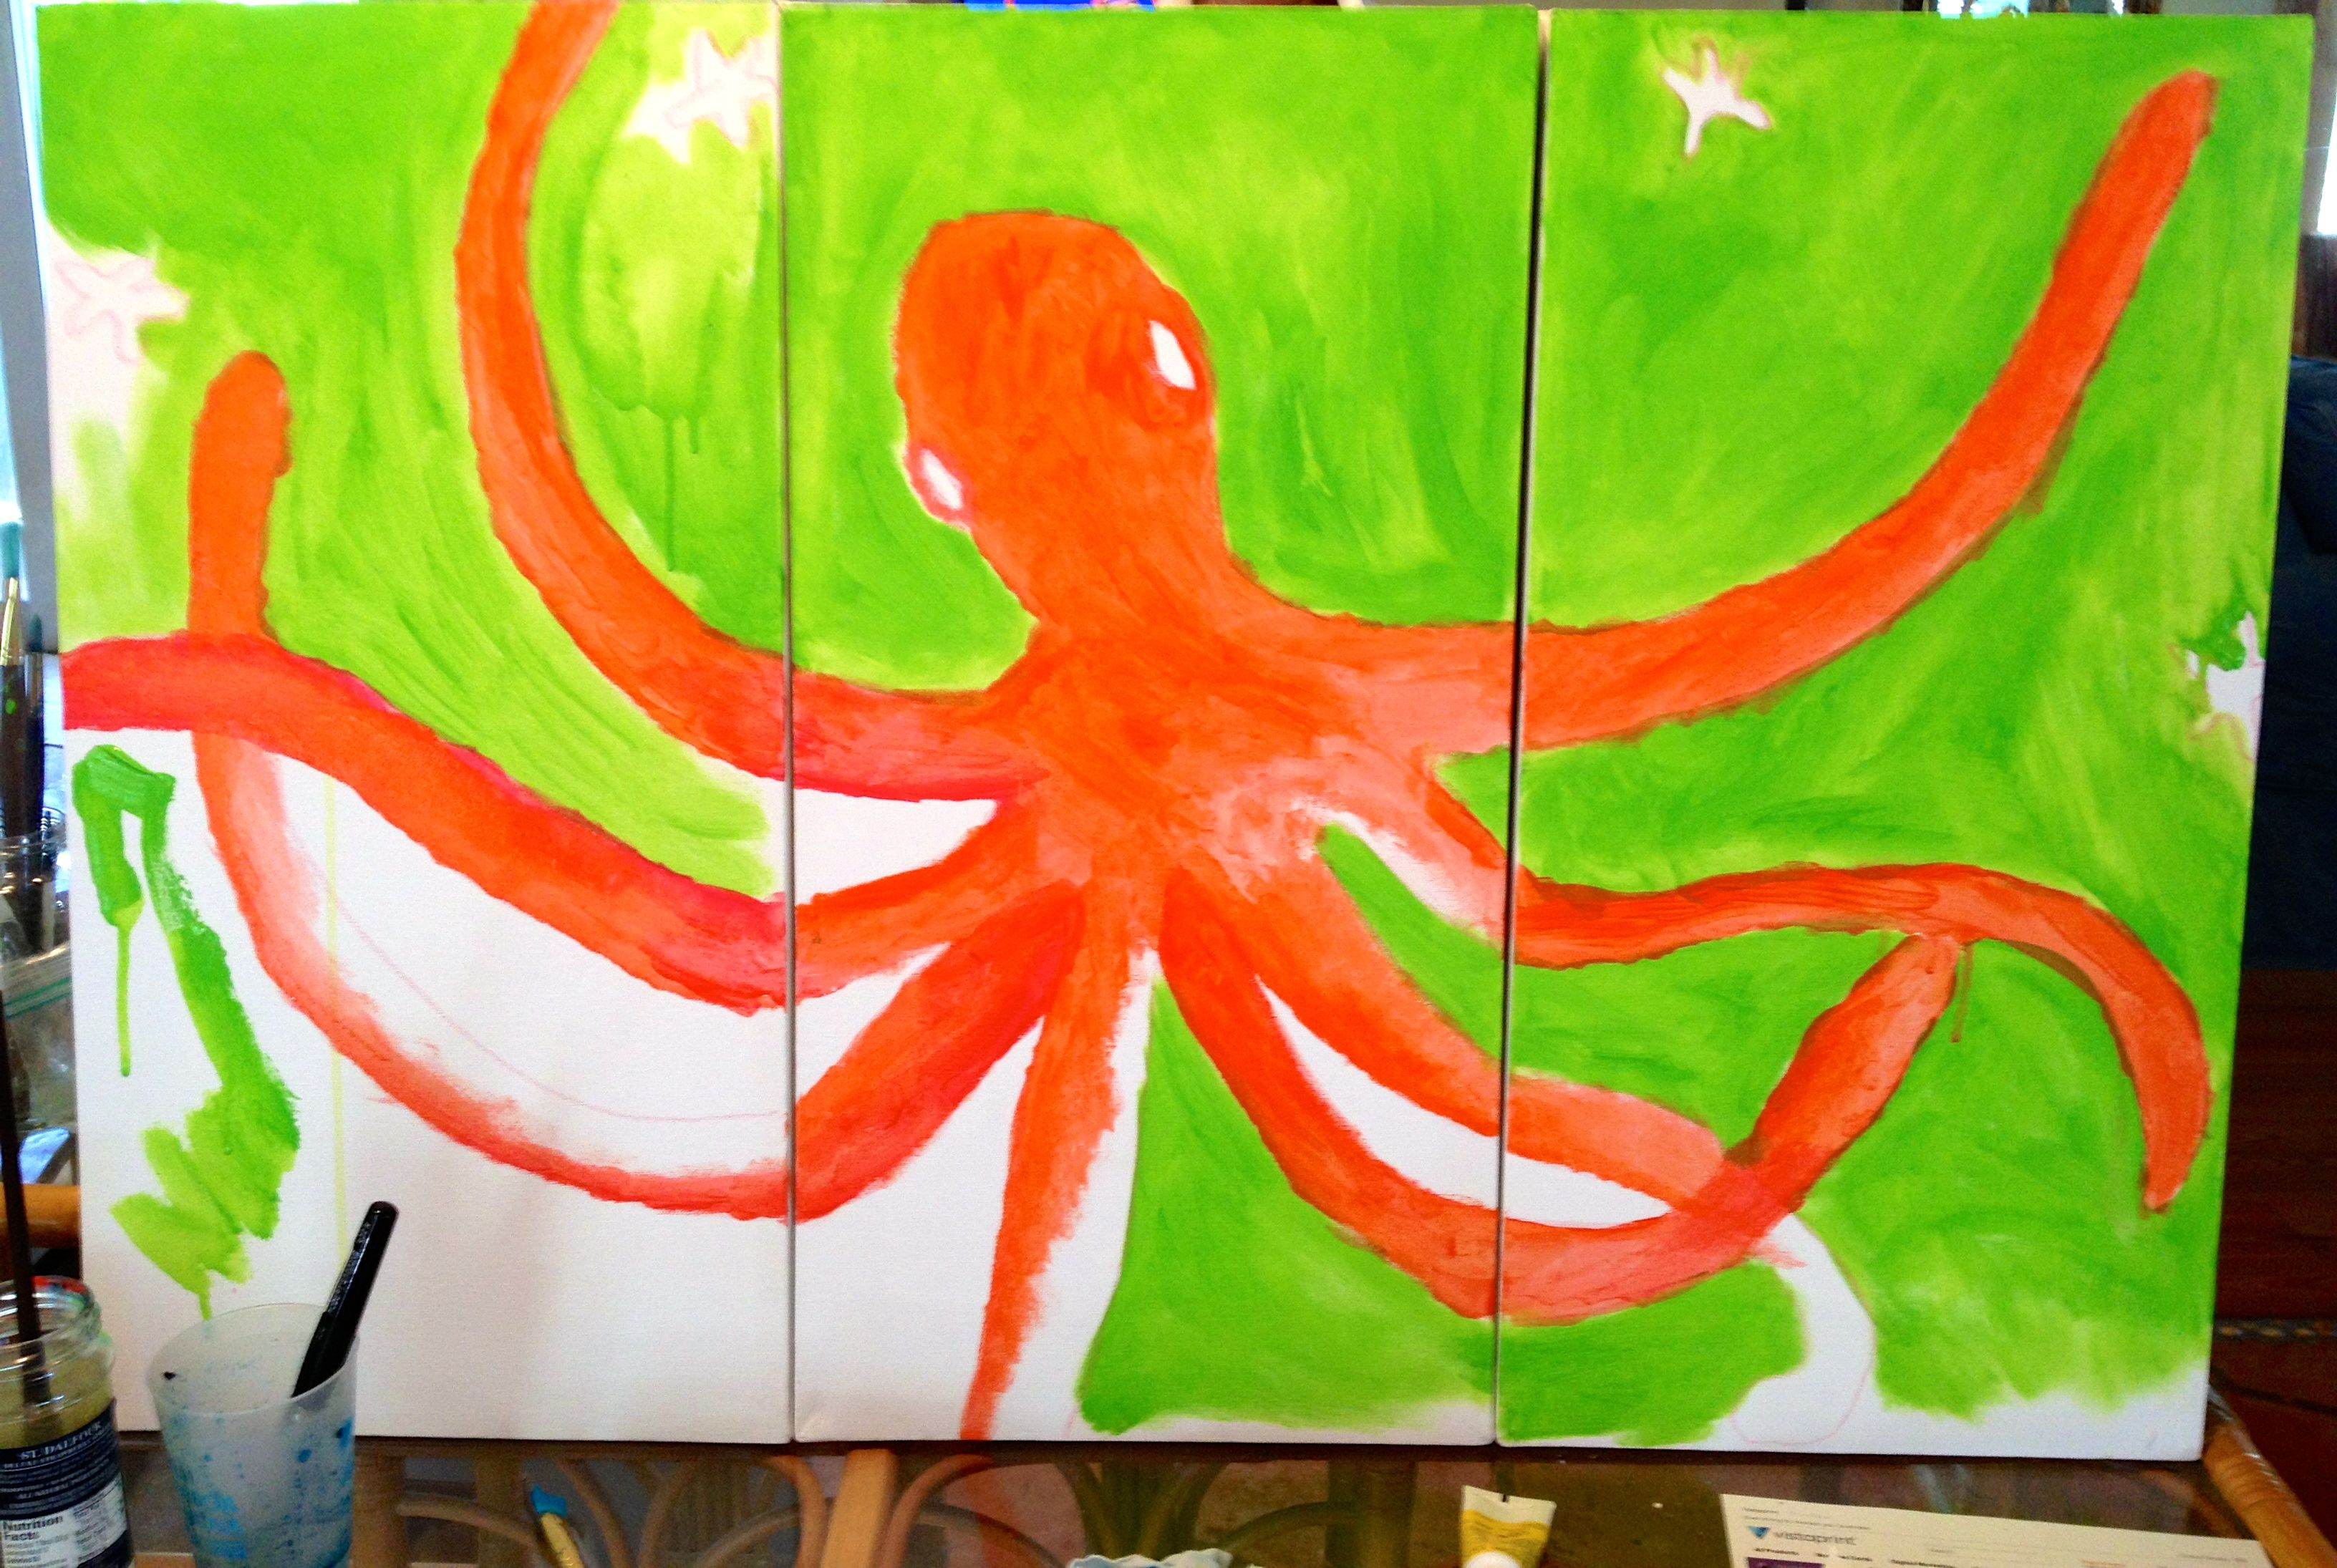 new painting work in progress…octopus on three canvases acrylics.  $350. deb@debyagerart.com